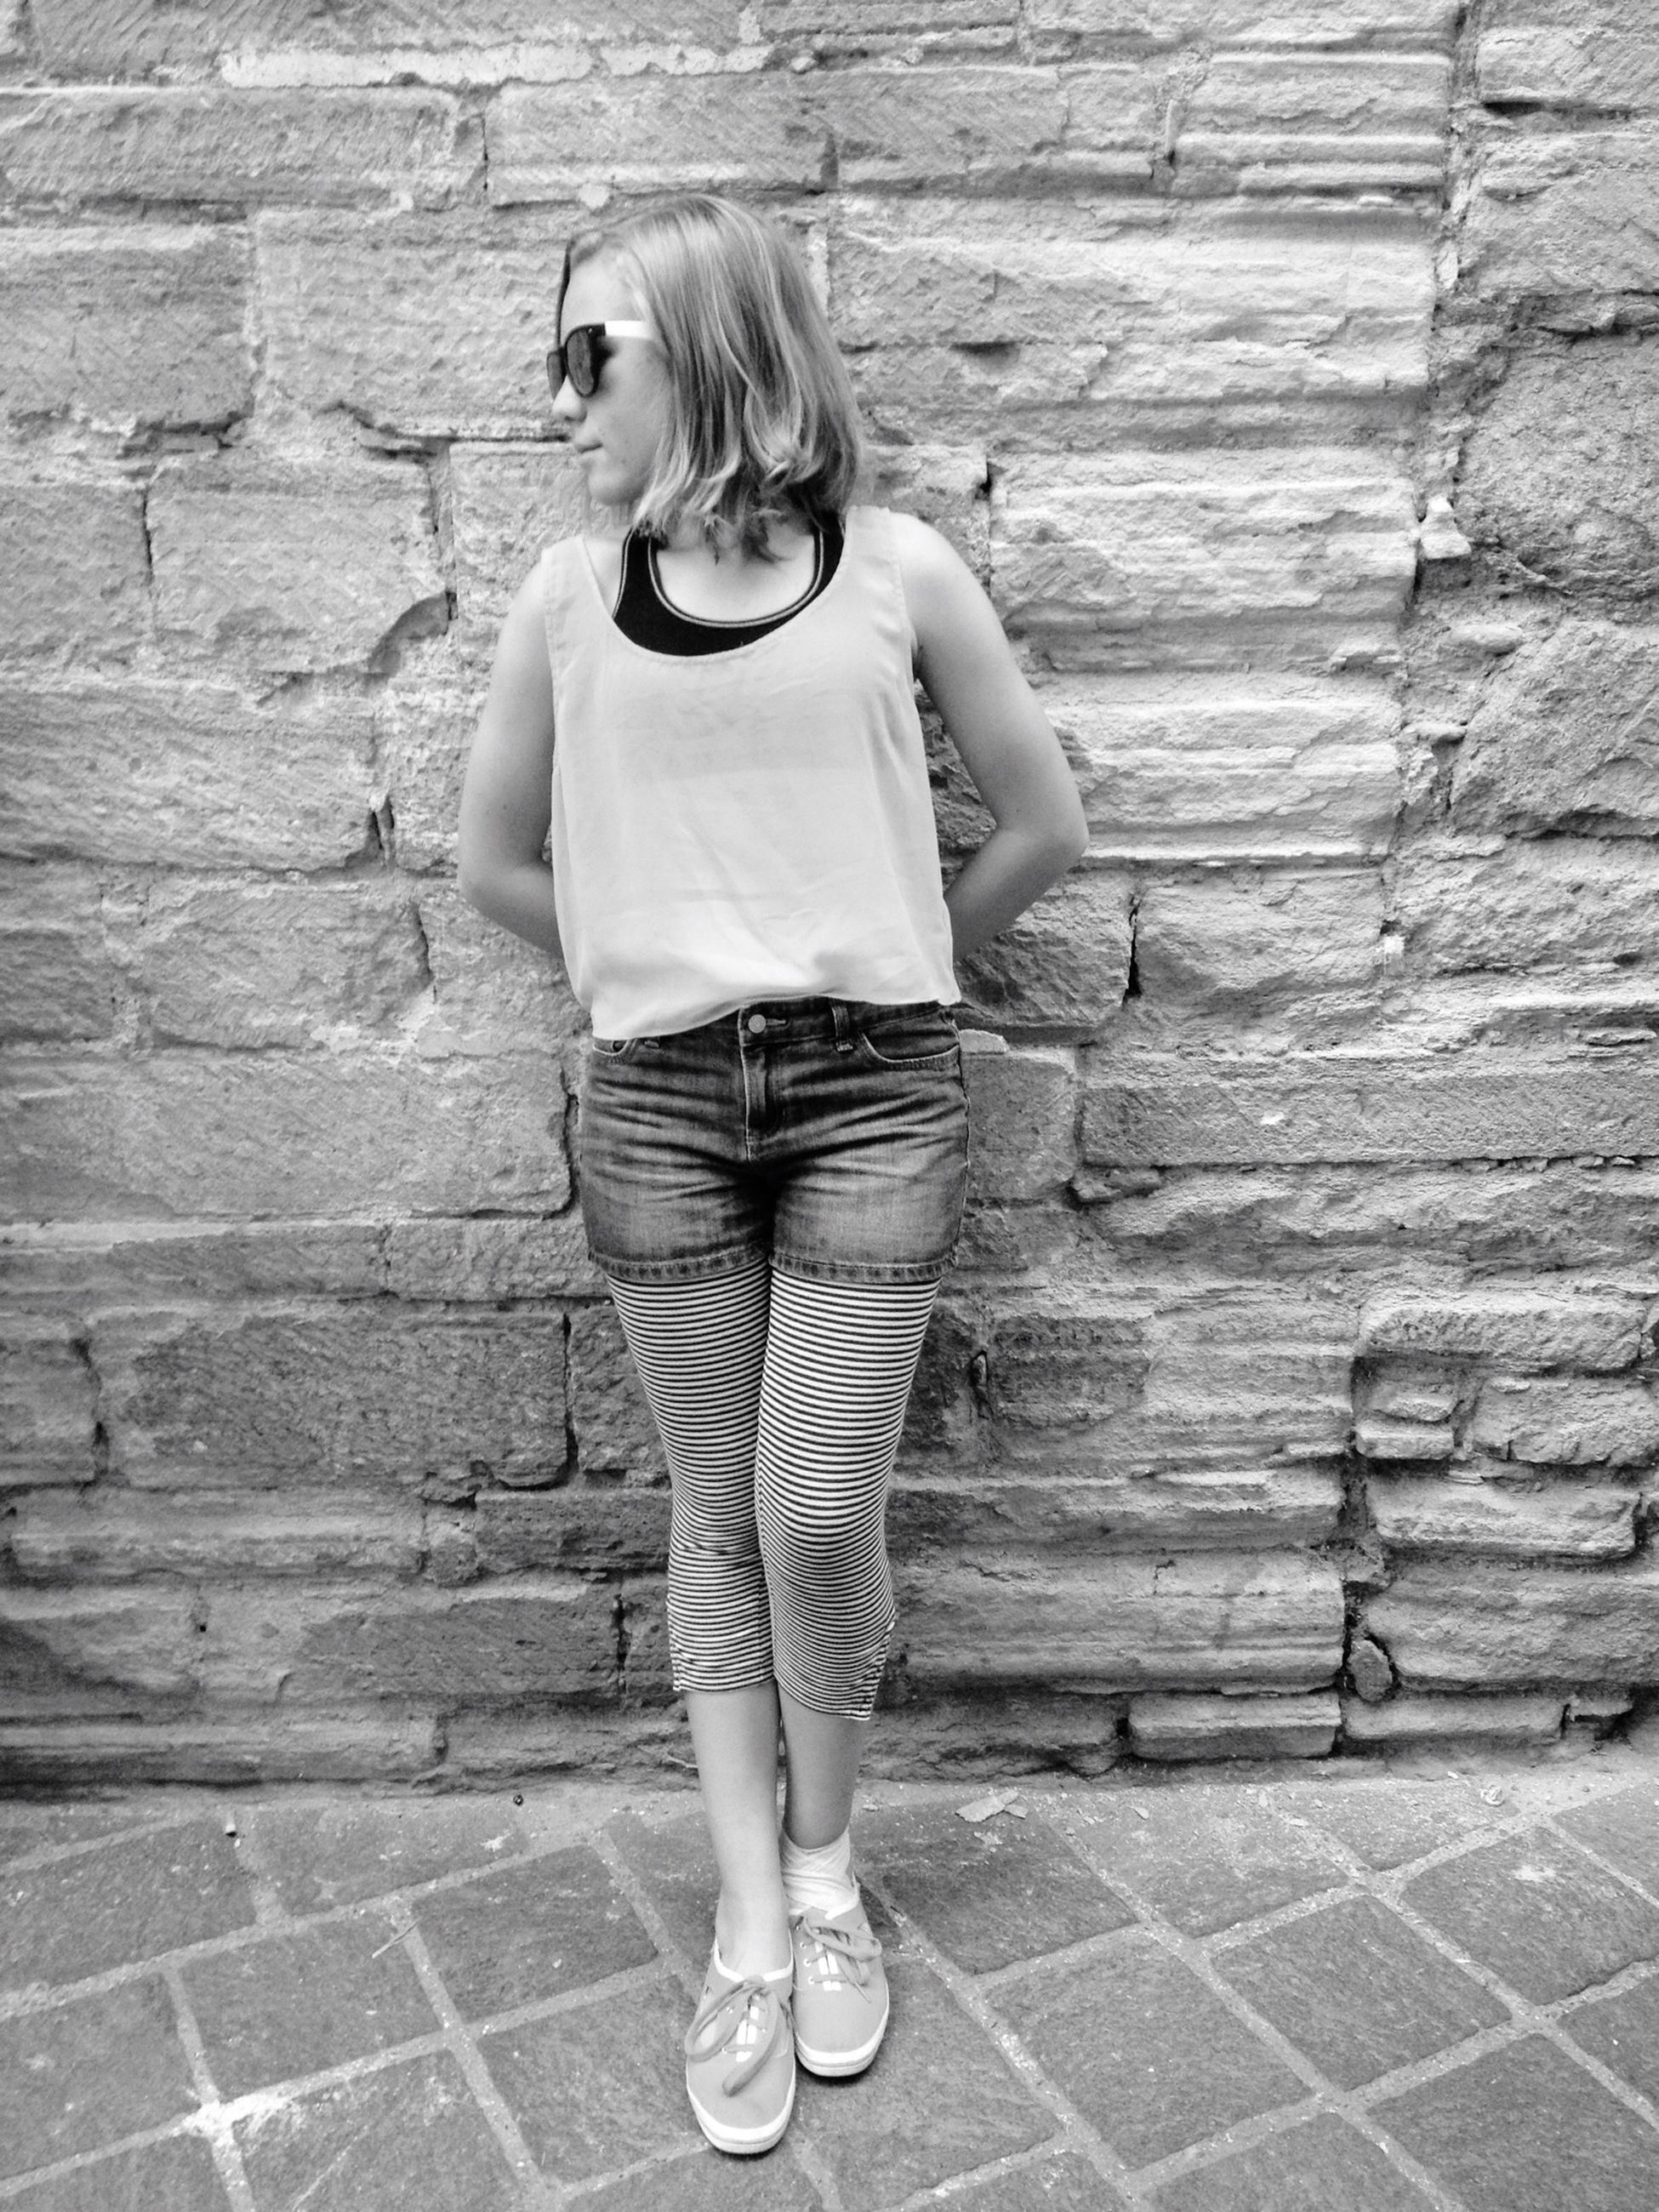 lifestyles, casual clothing, full length, leisure activity, standing, young adult, person, young women, front view, brick wall, wall - building feature, sidewalk, long hair, portrait, looking at camera, outdoors, day